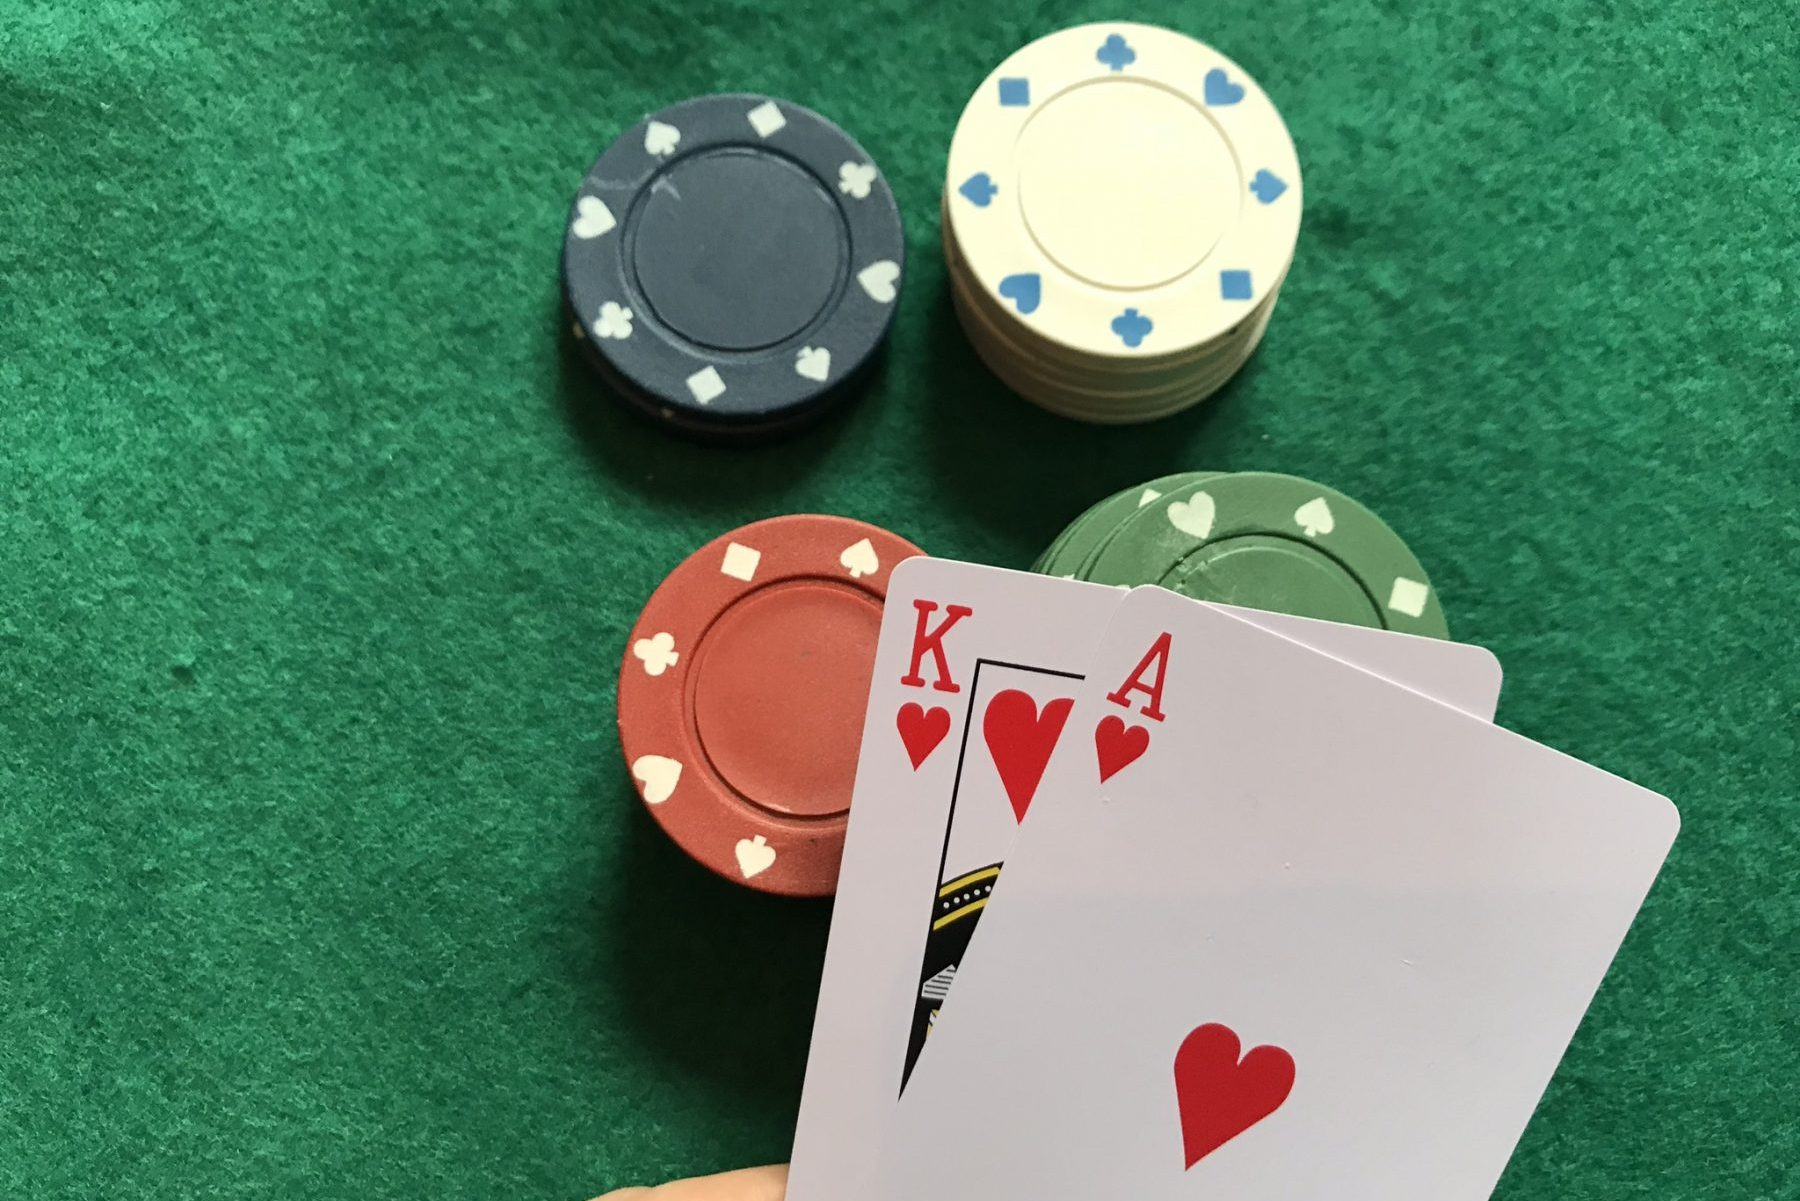 In an article about card counting, a person holding a a King and an Ace over some casino chips